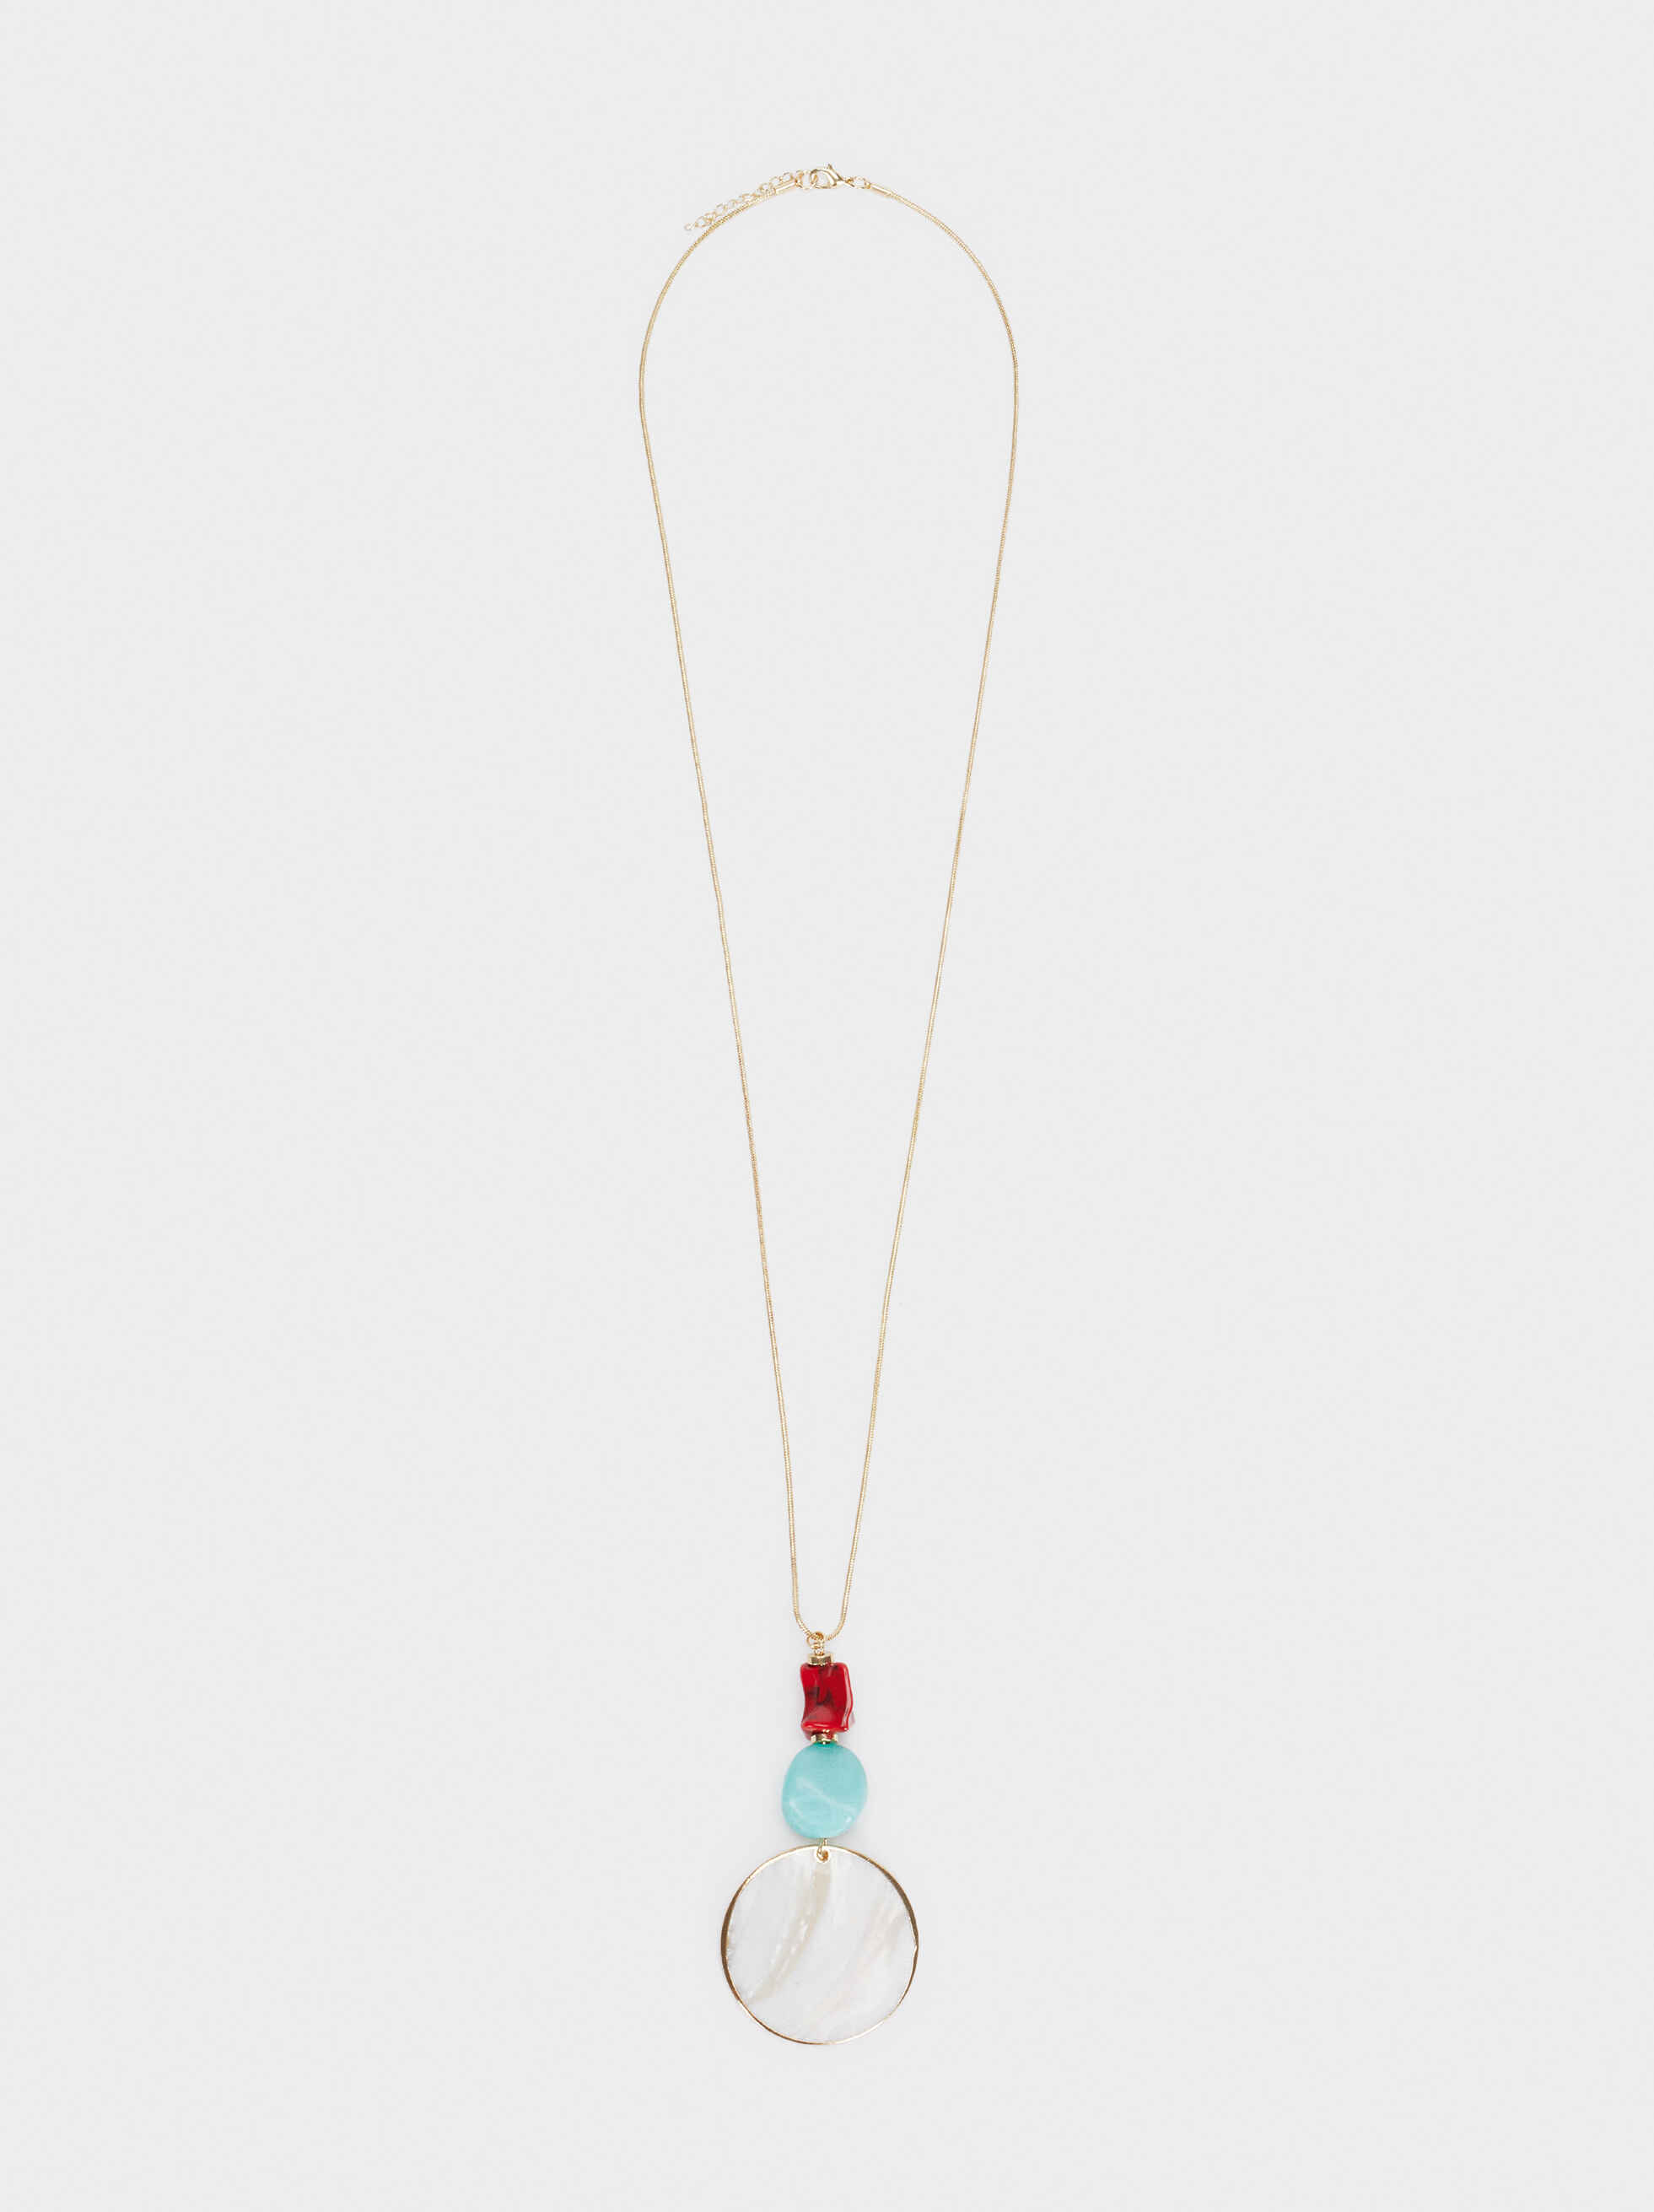 Recife Long Pendant Necklace, Multicolor, hi-res